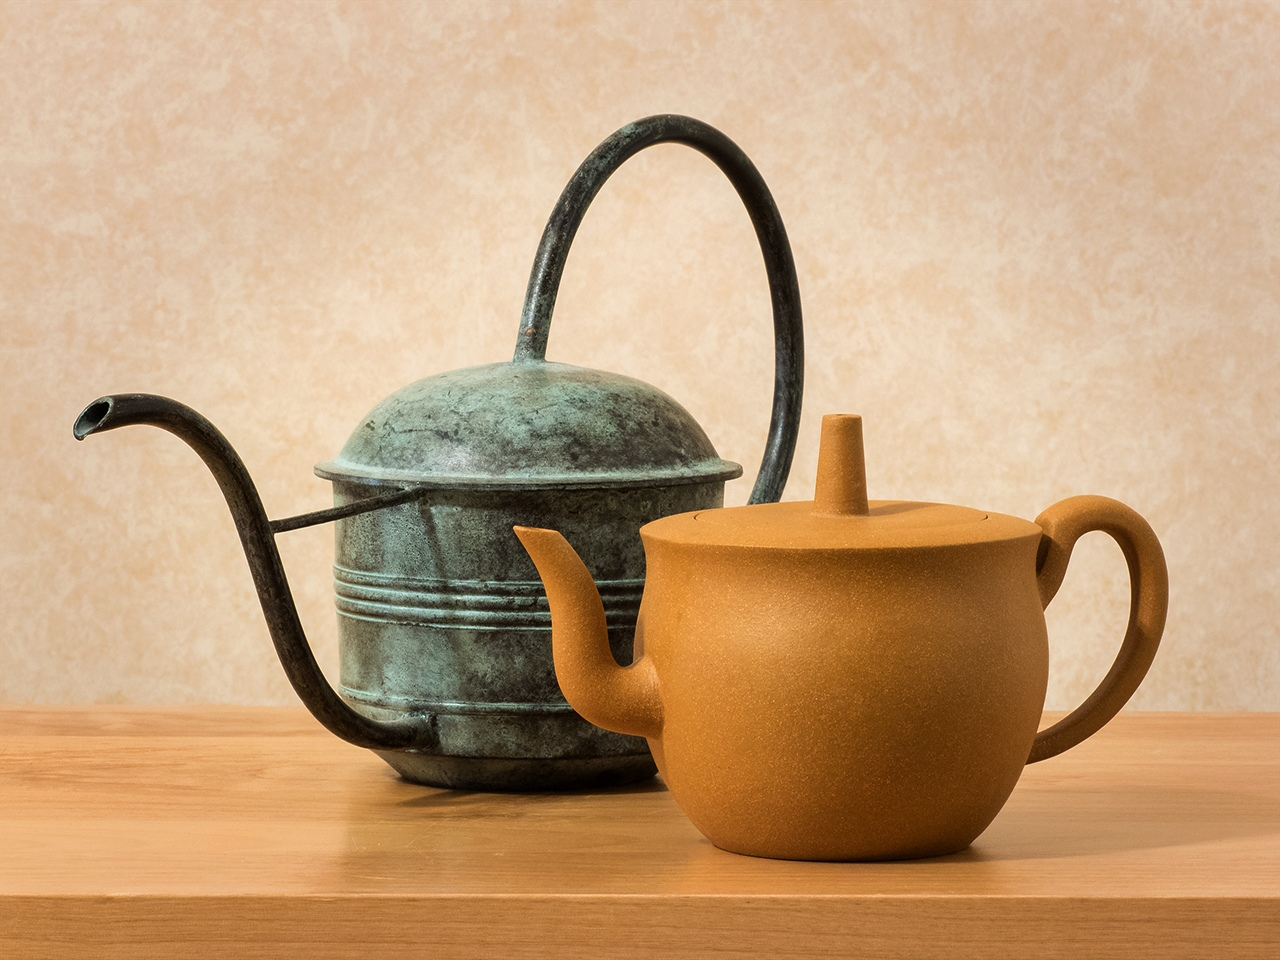 Watering Can and Teapot - Margaret Boike - SPCC